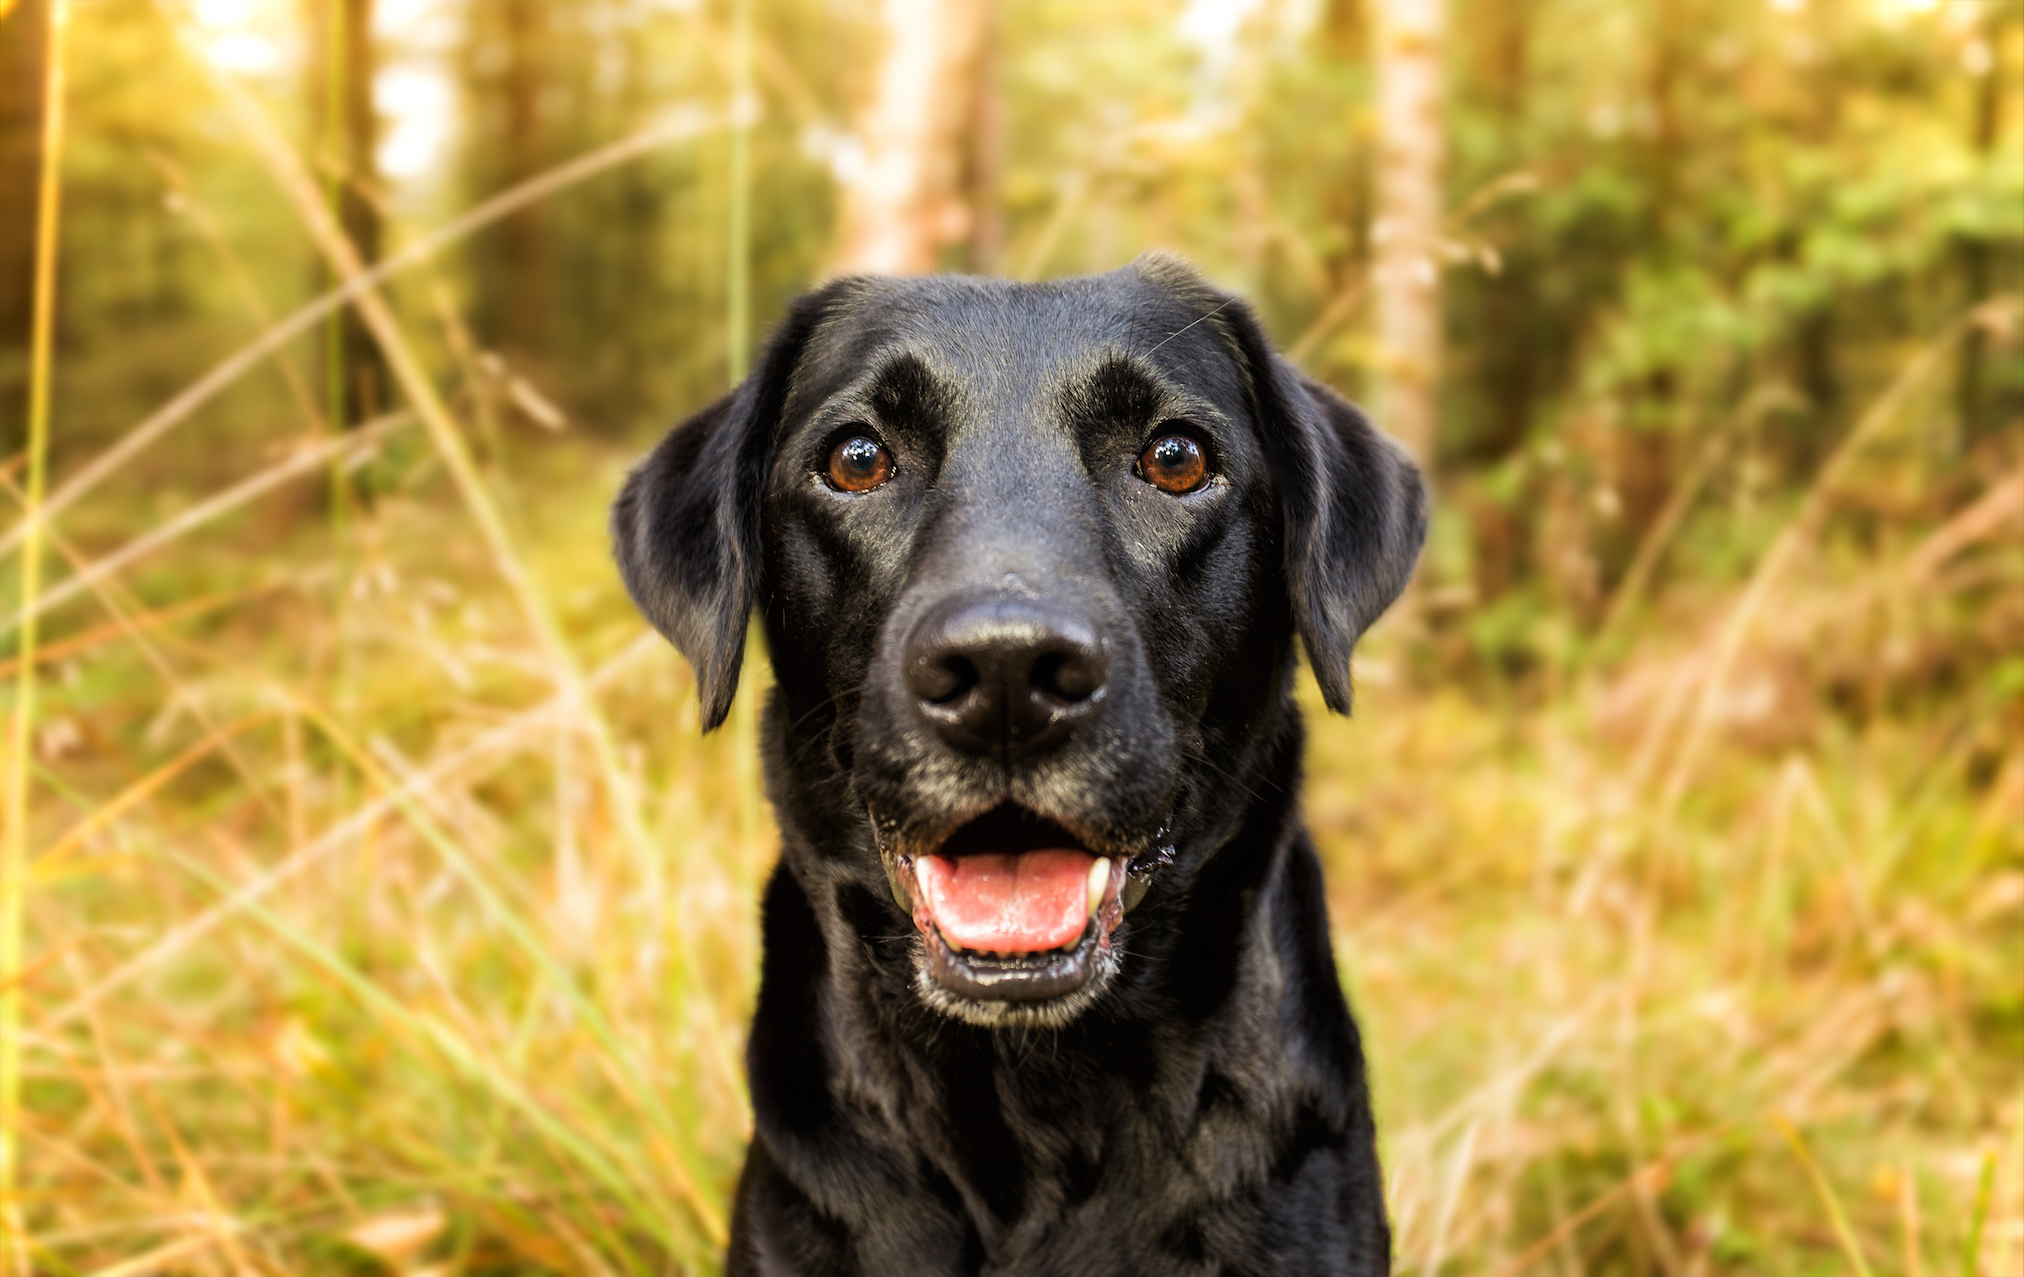 What if trained dogs could diagnose the existence of cancer cells just about as accurately as the most advanced mammography and MRI technology?